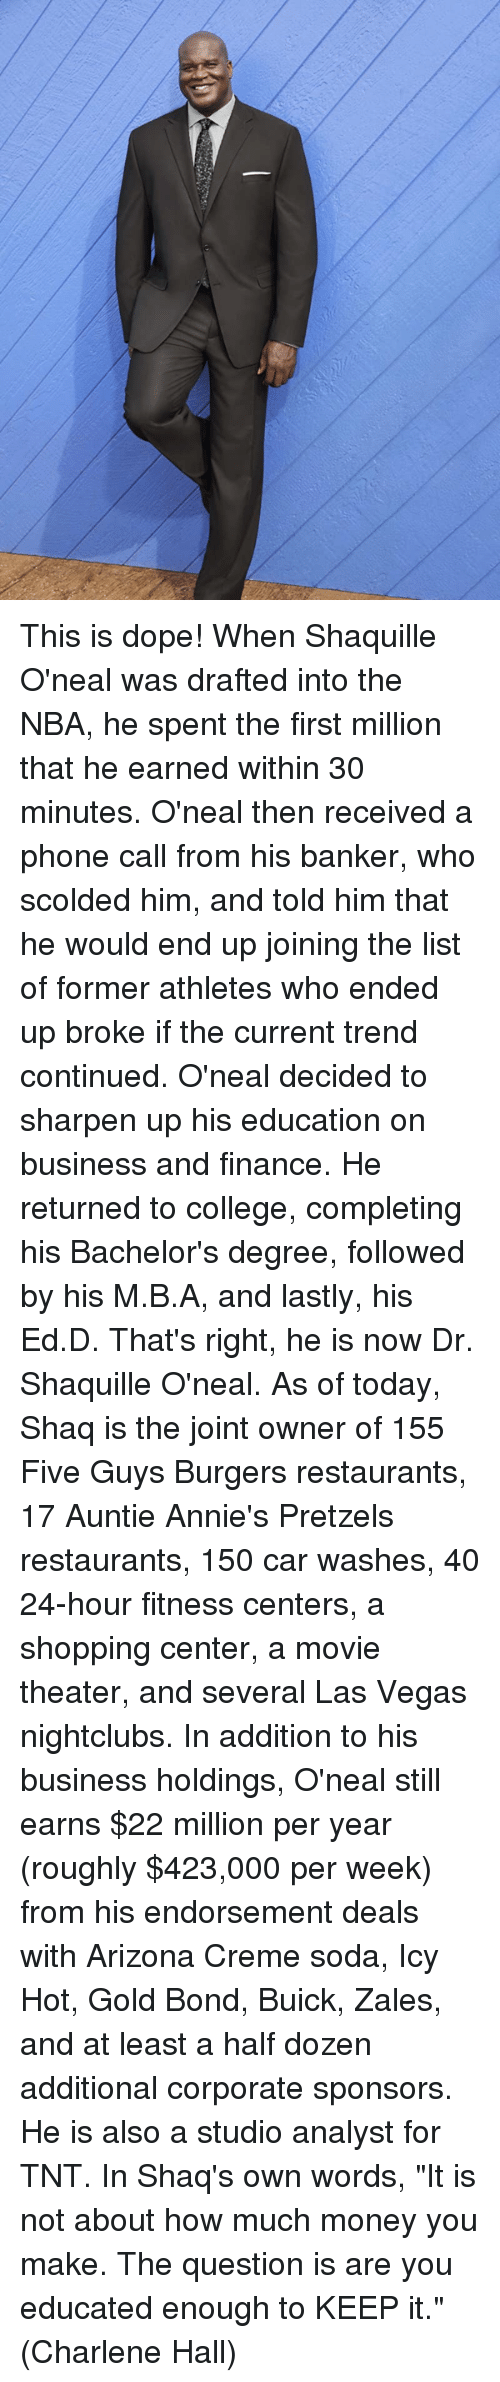 "College, Dope, and Finance: This is dope!  When Shaquille O'neal was drafted into the NBA, he spent the first million that he earned within 30 minutes. O'neal then received a phone call from his banker, who scolded him, and told him that he would end up joining the list of former athletes who ended up broke if the current trend continued.  O'neal decided to sharpen up his education on business and finance. He returned to college, completing his Bachelor's degree, followed by his M.B.A, and lastly, his Ed.D. That's right, he is now Dr. Shaquille O'neal.  As of today, Shaq is the joint owner of 155 Five Guys Burgers restaurants, 17 Auntie Annie's Pretzels restaurants, 150 car washes, 40 24-hour fitness centers, a shopping center, a movie theater, and several Las Vegas nightclubs.  In addition to his business holdings, O'neal still earns $22 million per year (roughly $423,000 per week) from his endorsement deals with Arizona Creme soda, Icy Hot, Gold Bond, Buick, Zales, and at least a half dozen additional corporate sponsors. He is also a studio analyst for TNT.  In Shaq's own words, ""It is not about how much money you make. The question is are you educated enough to KEEP it.""  (Charlene Hall)"